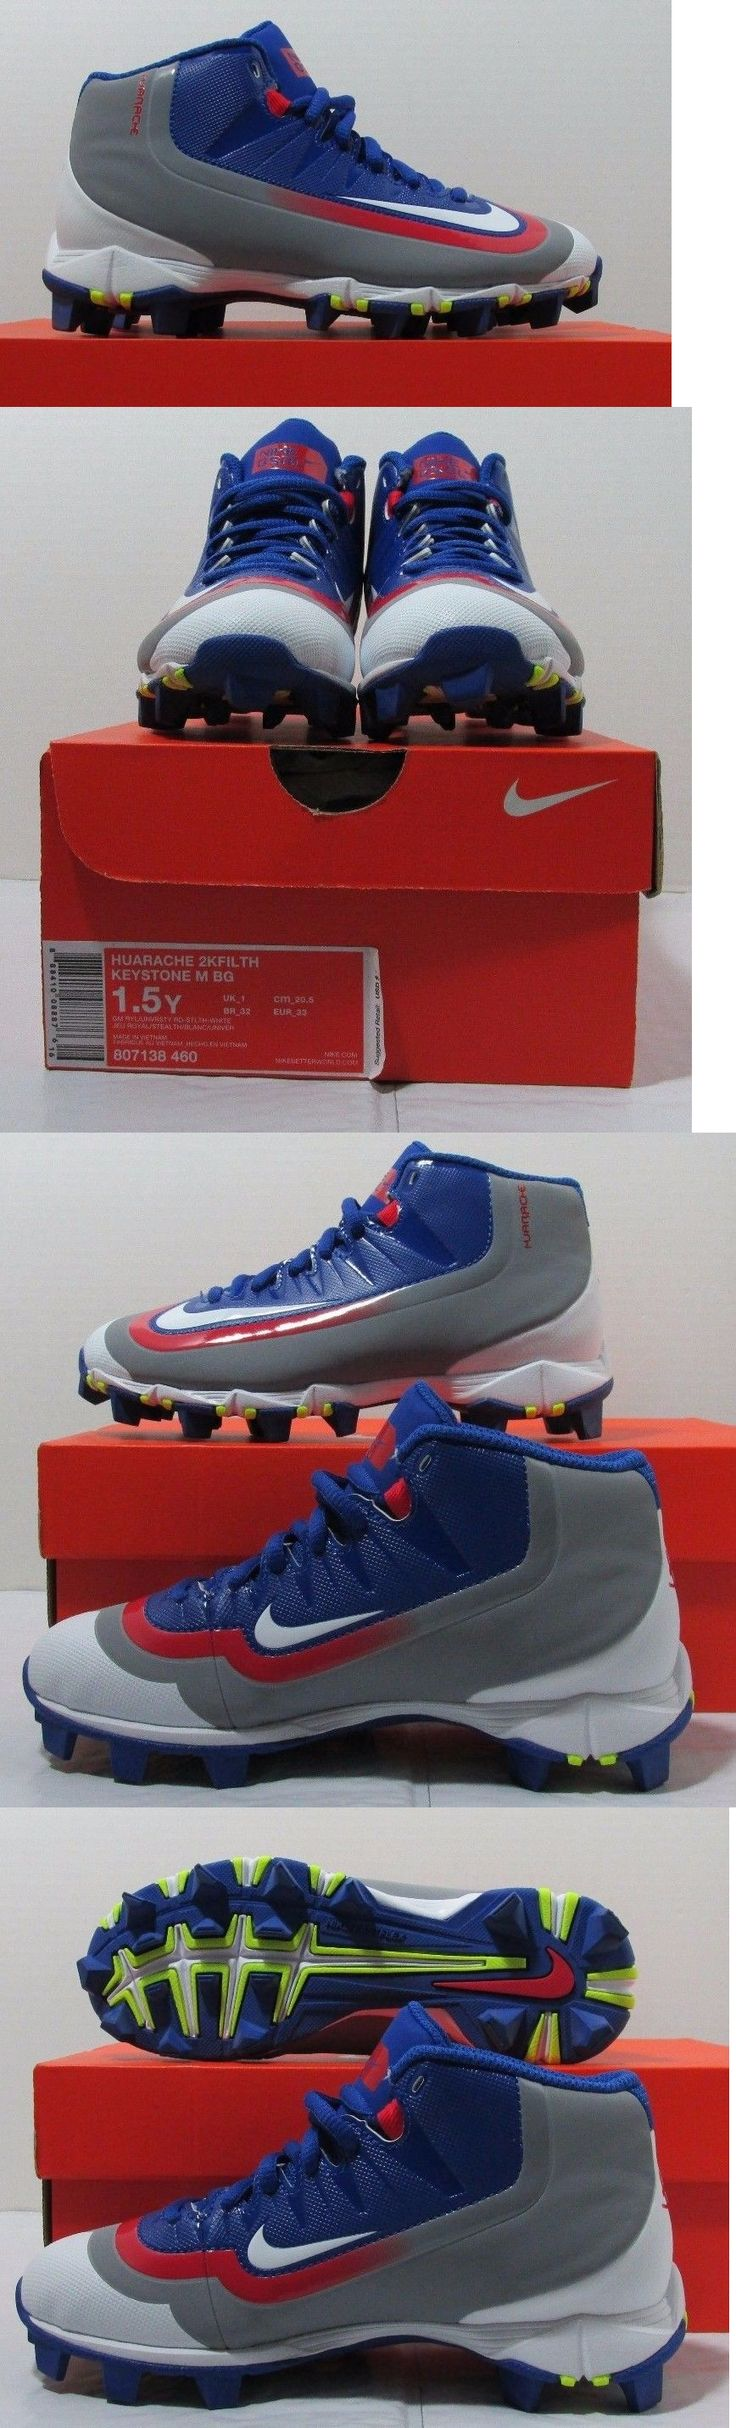 Youth 159061: Nike Huarache 2Kfilth Keystone 807138 460 Sz 1.5Y Youth Baseball Cleats New Cubs -> BUY IT NOW ONLY: $34.99 on eBay!